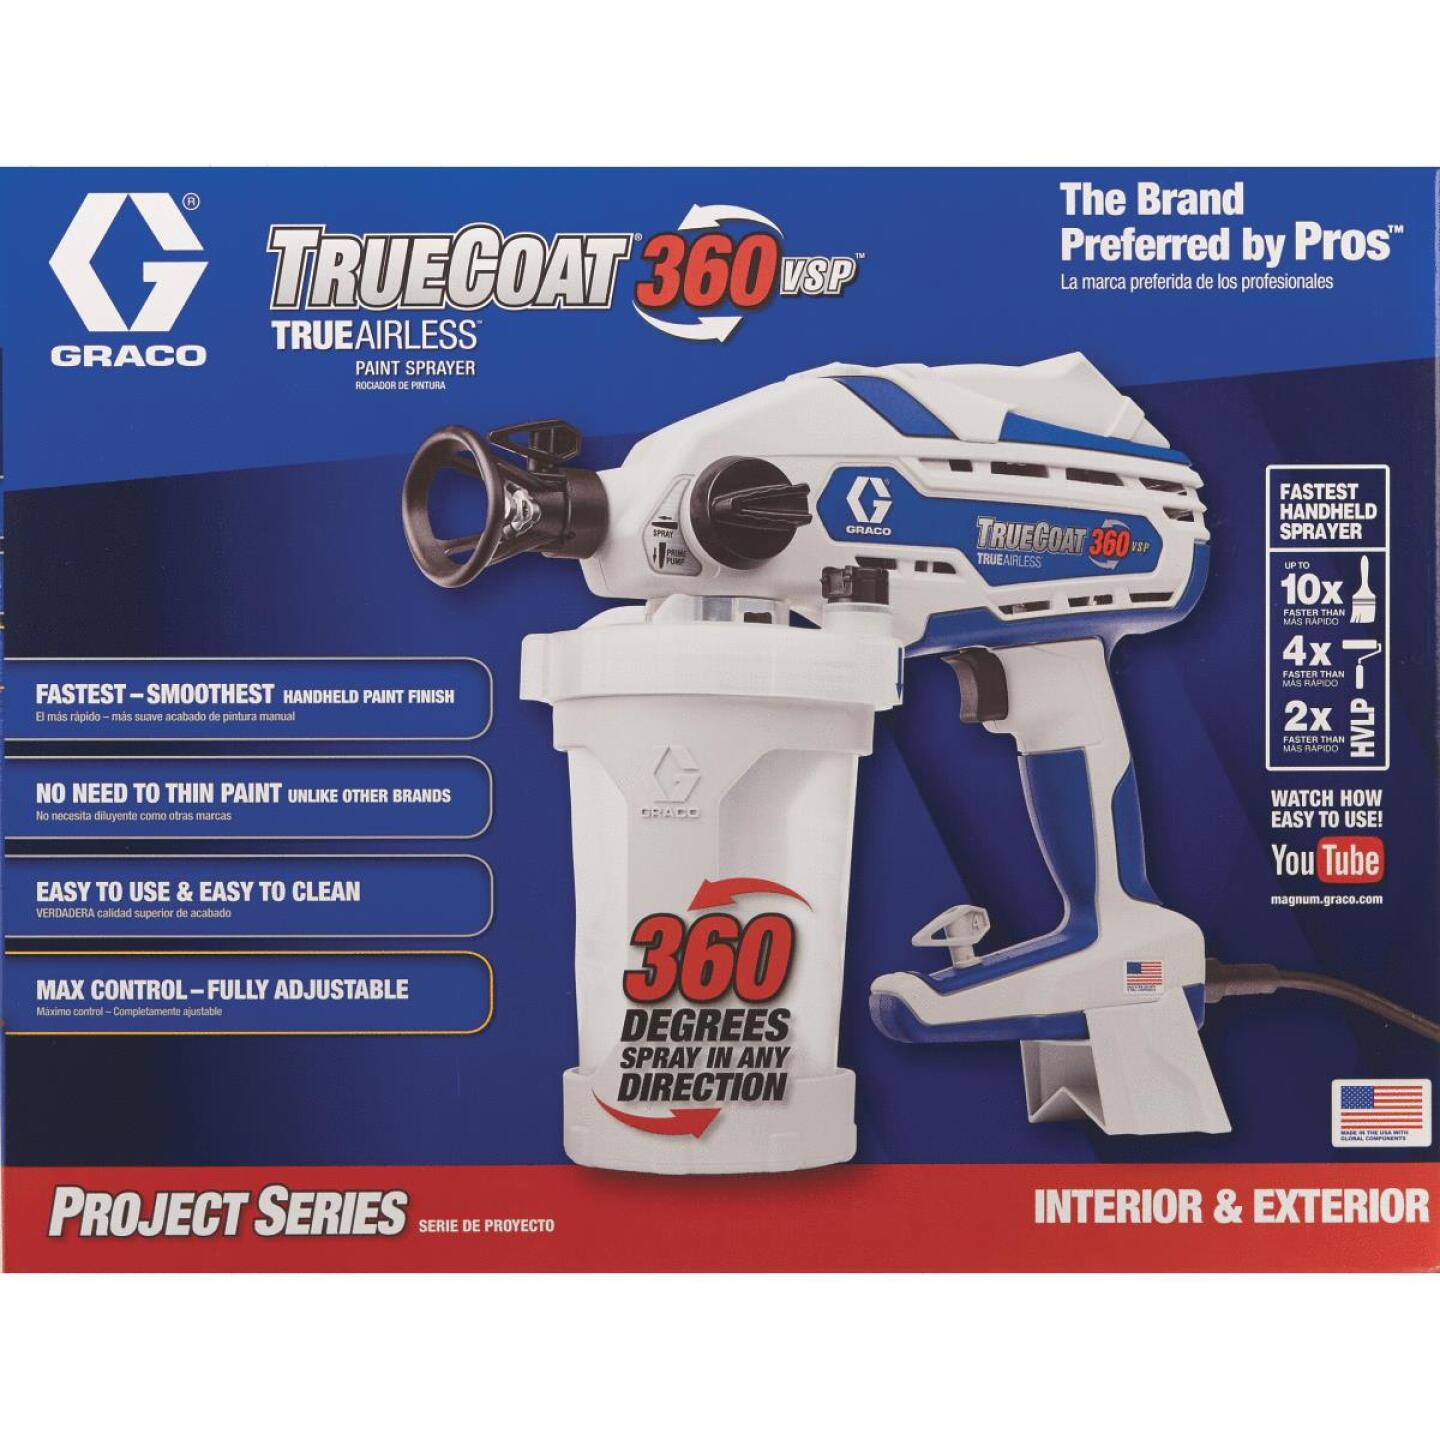 Graco TrueCoat 360 VSP Electric Airless Paint Sprayer Image 3